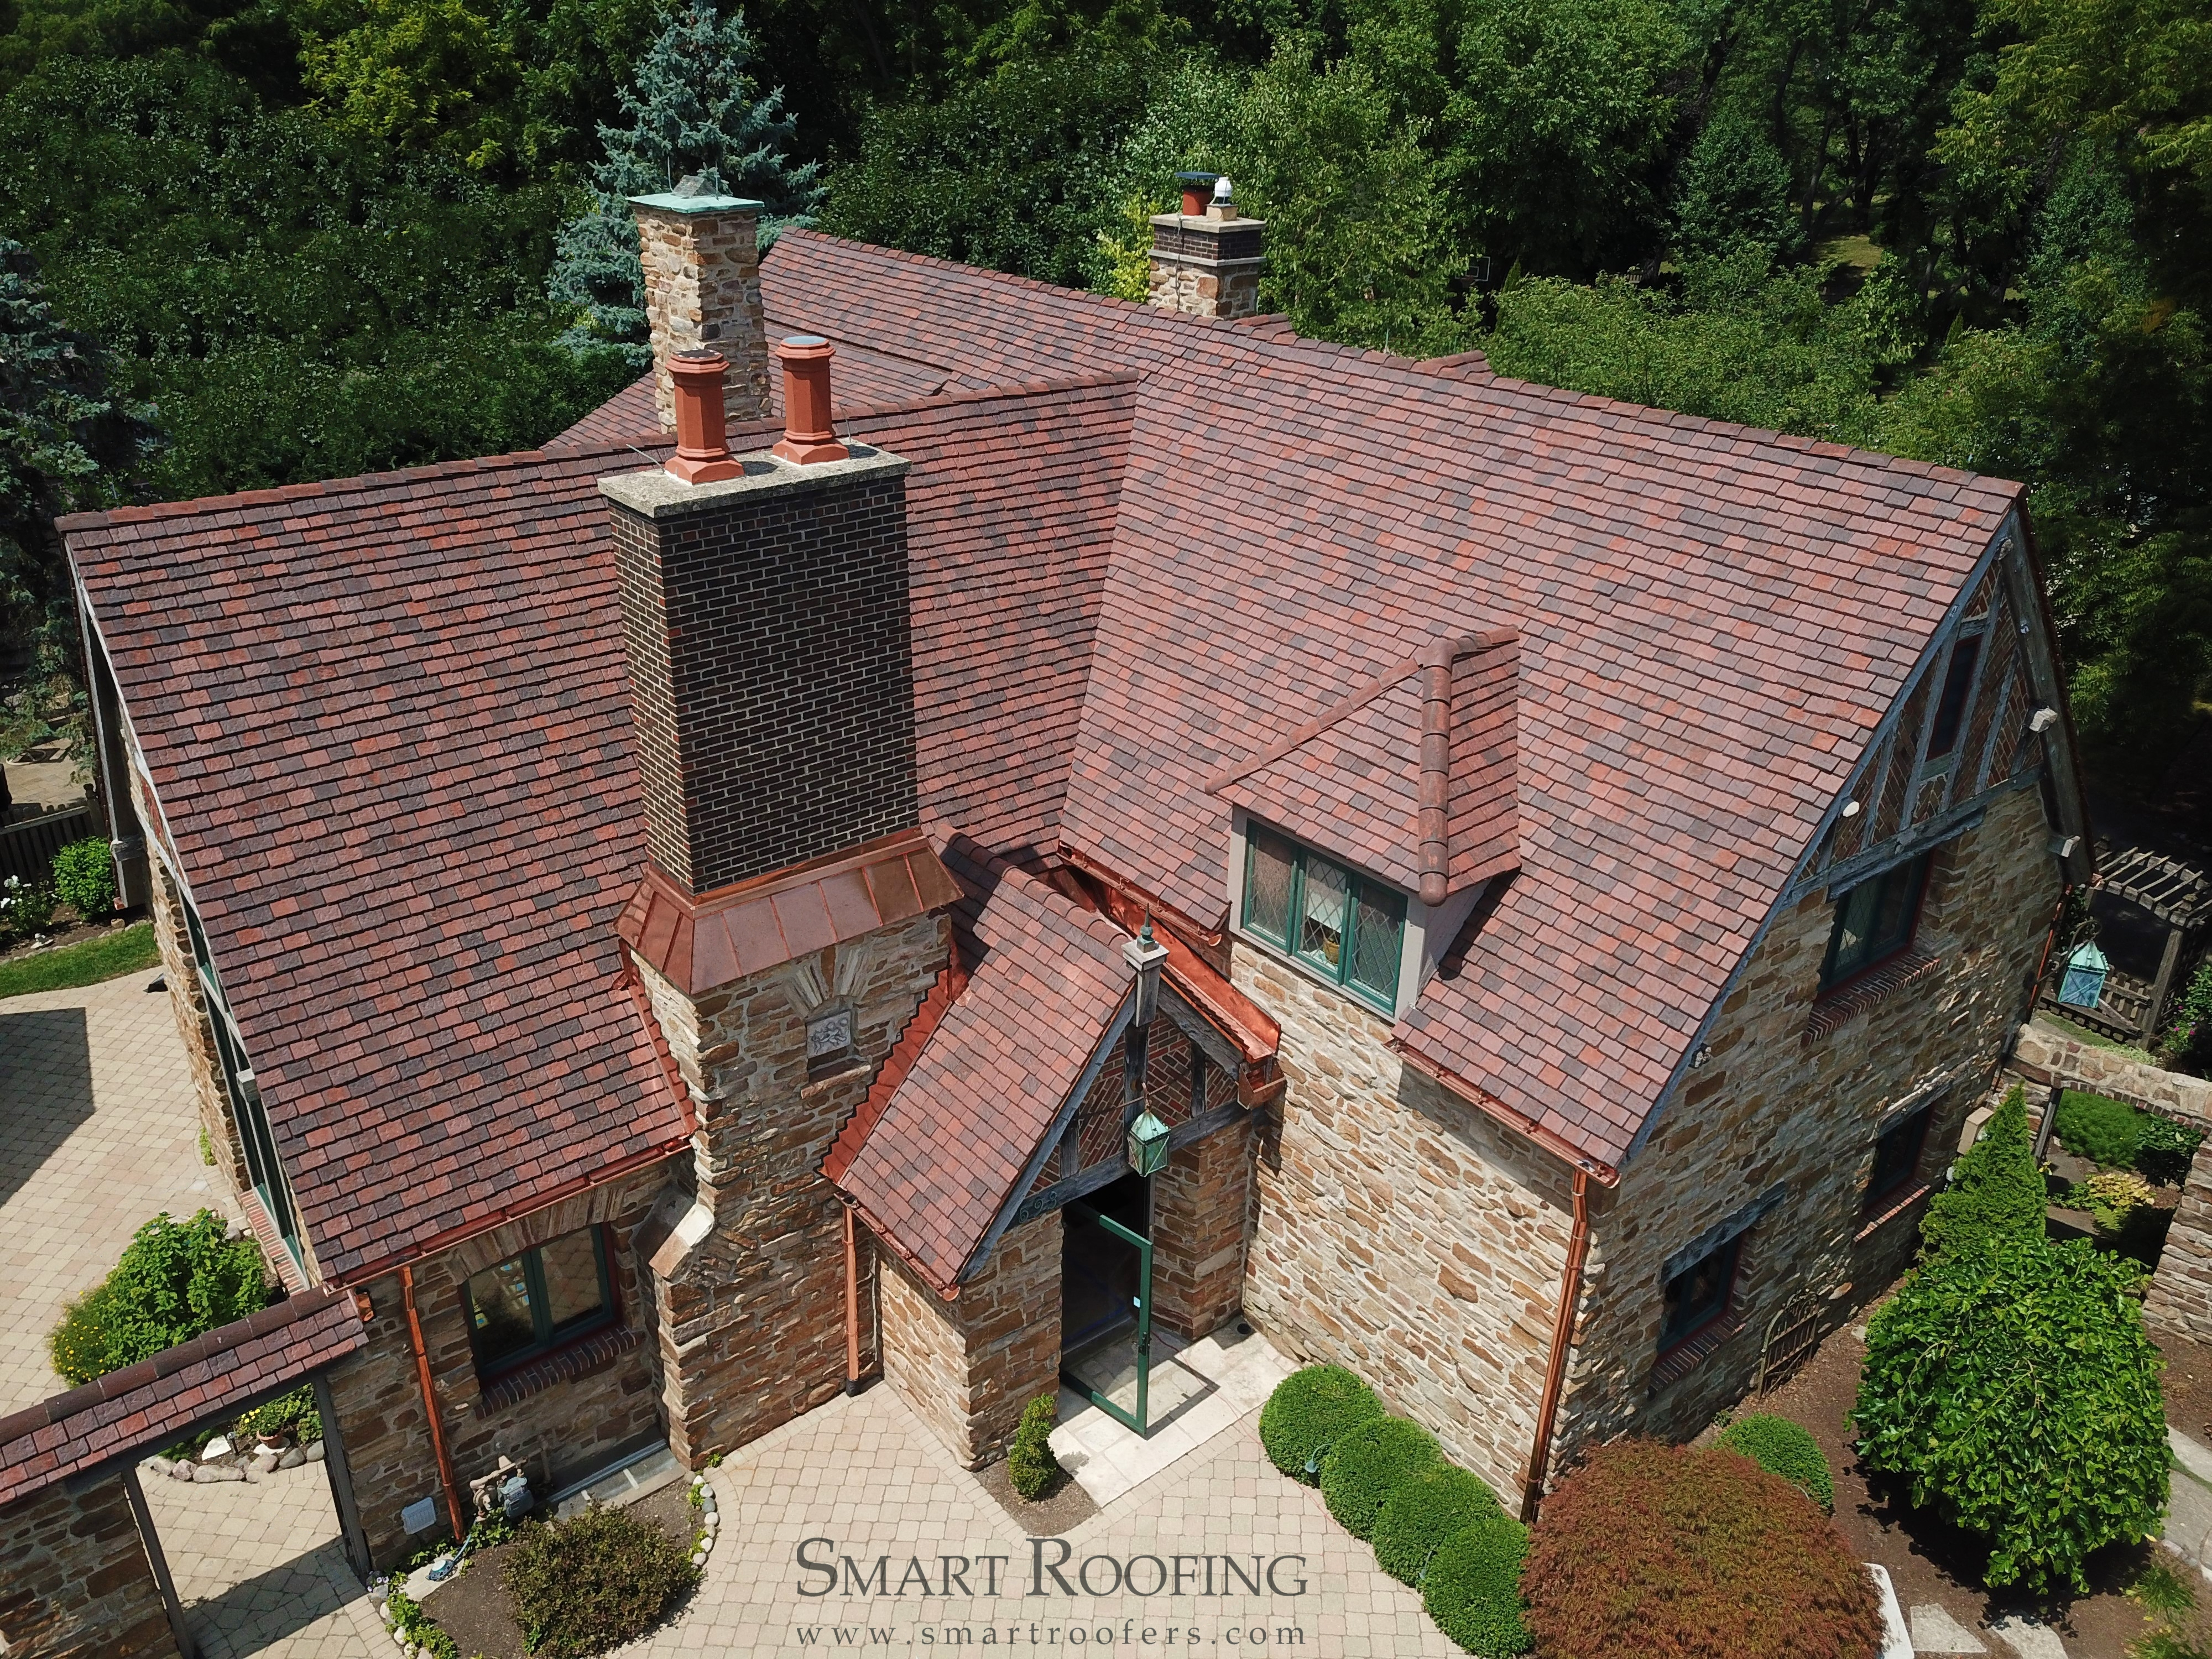 187 Smart Roofing Inc Hail Damaged Tile Roof Replacement